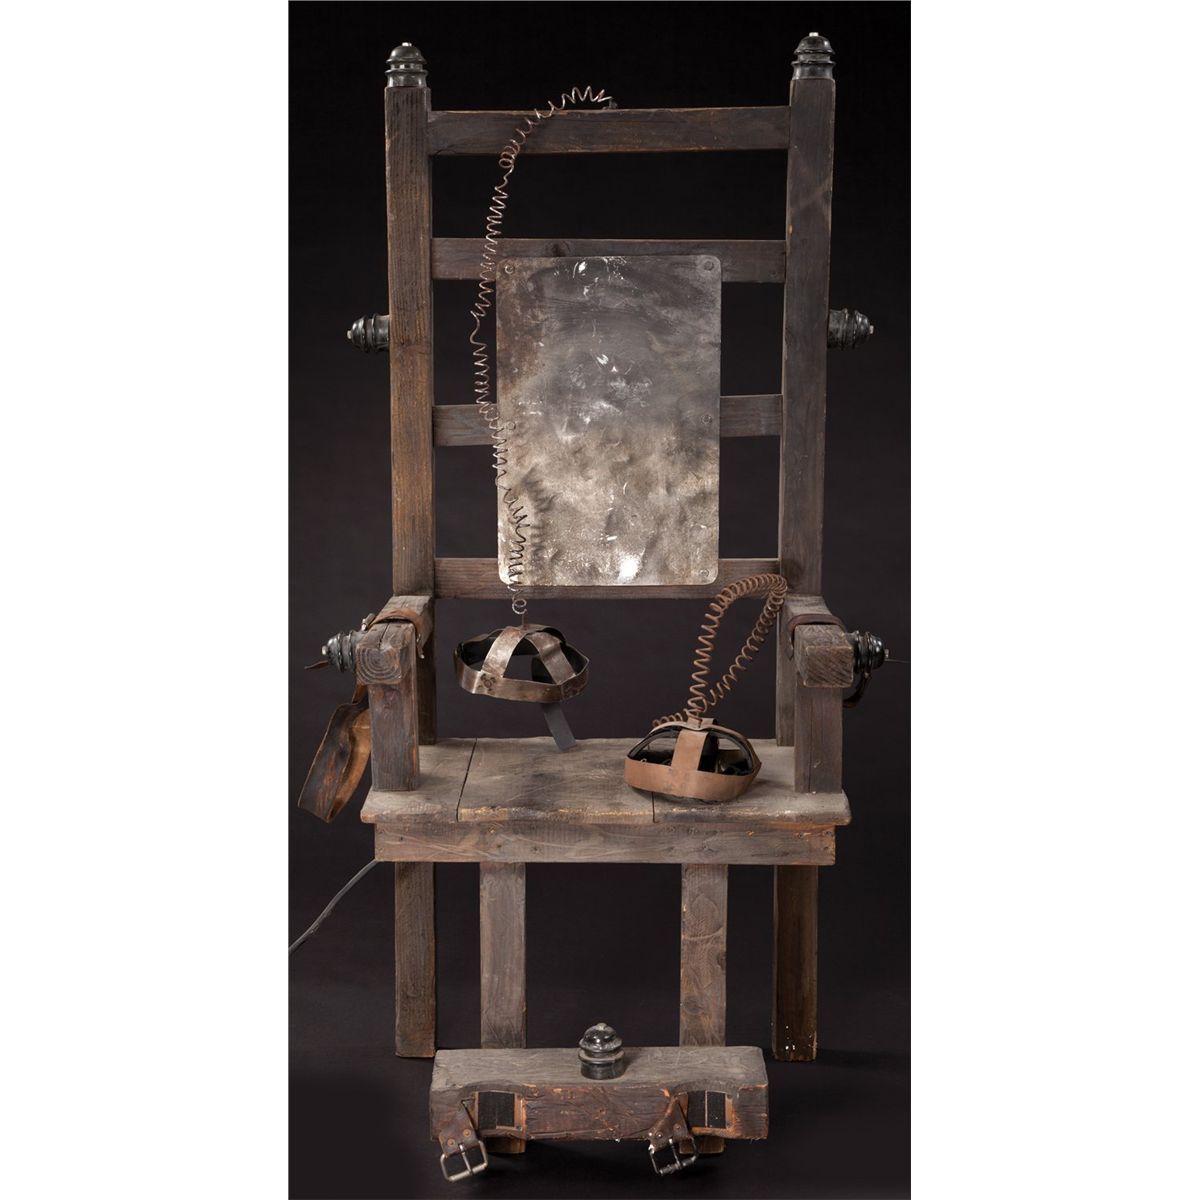 Antique Electric Chair For Sale - Antique Electric Chair For Sale Antique Furniture